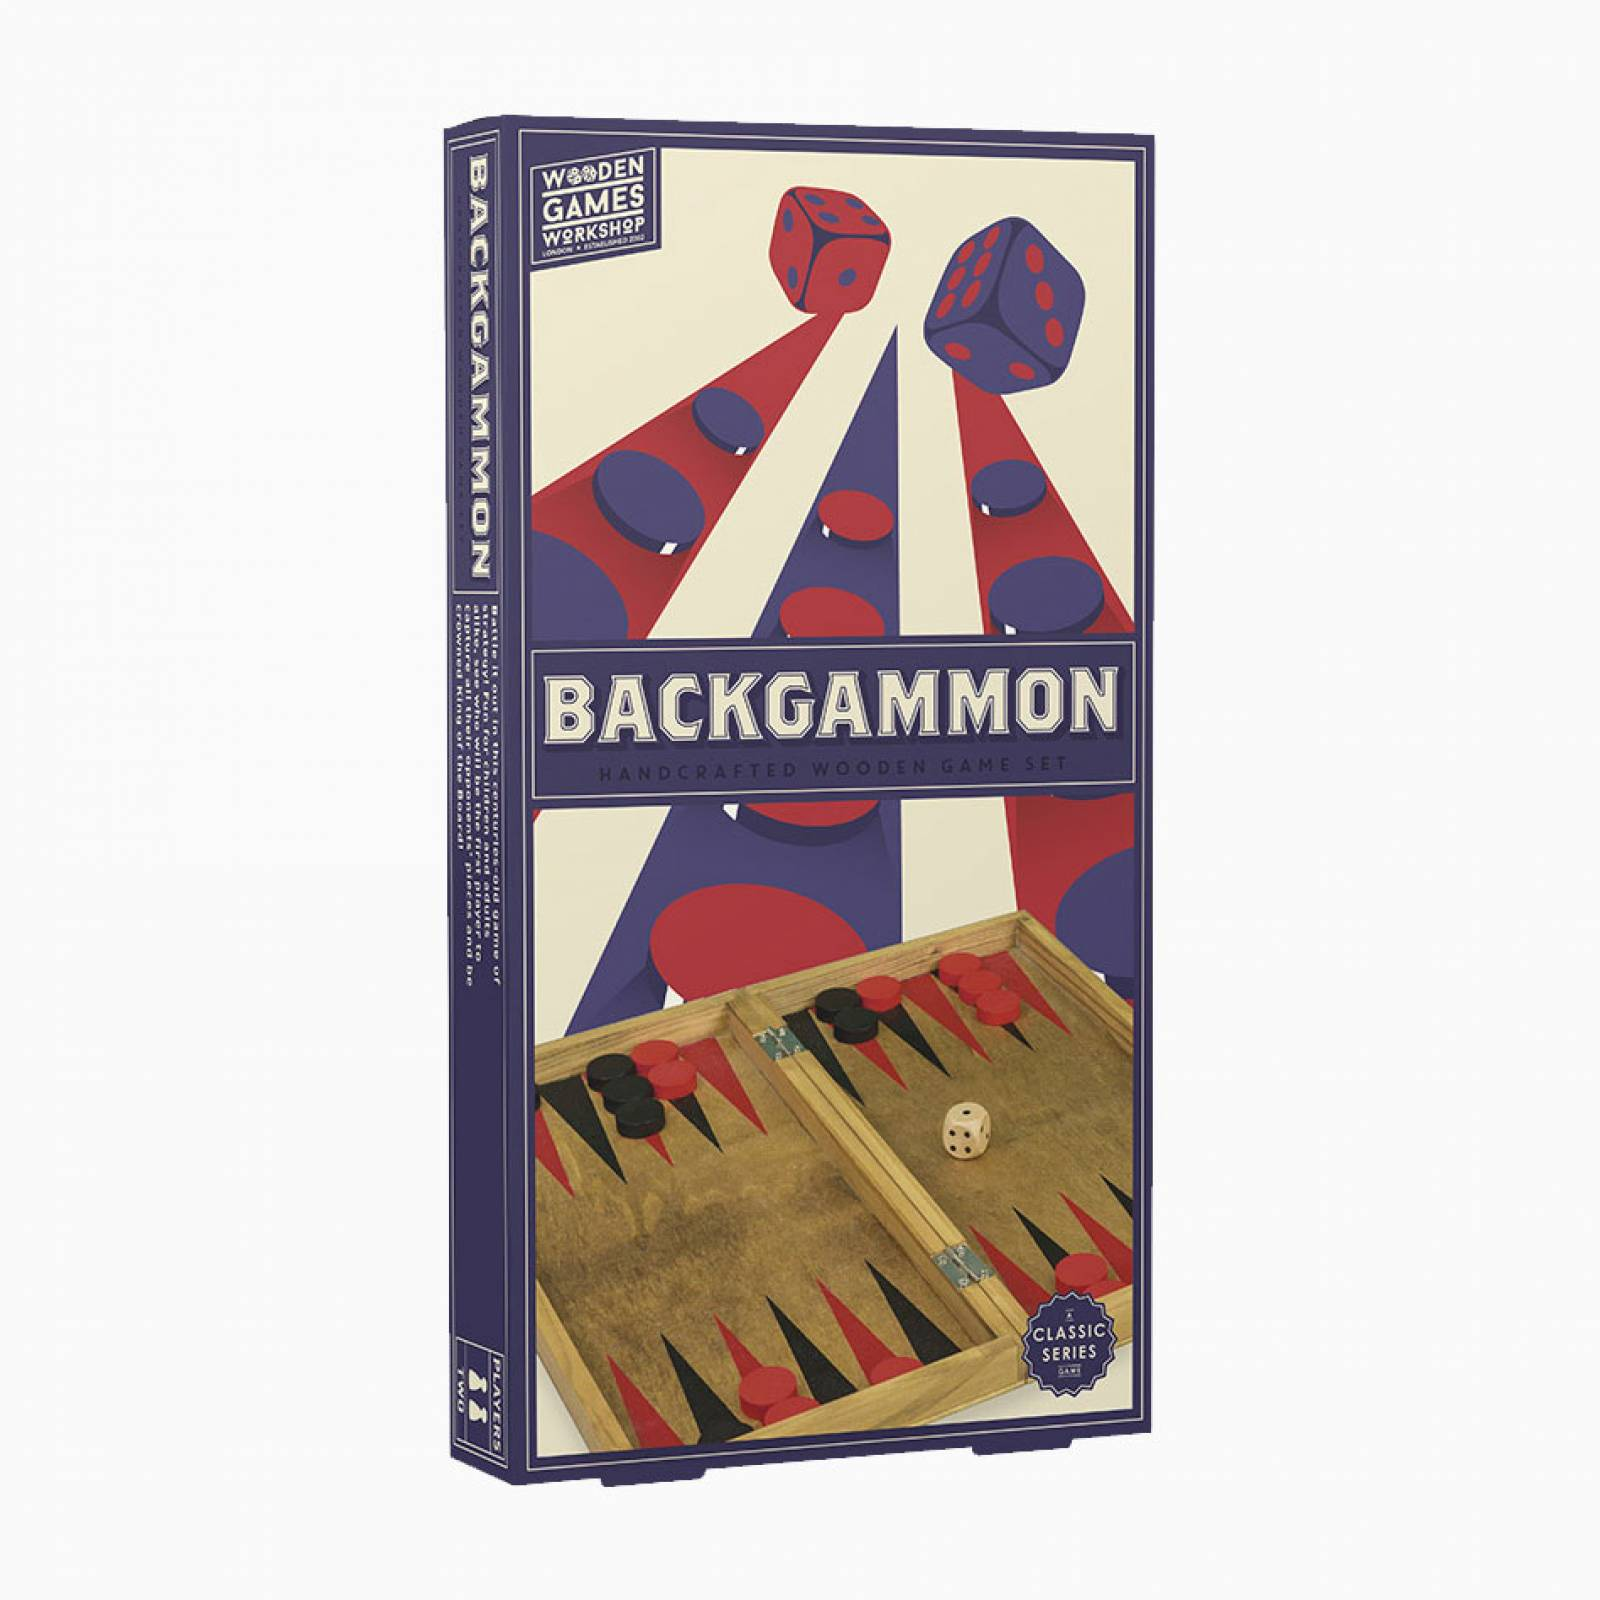 Backgammon - Handcrafted Wooden Board Game 3+